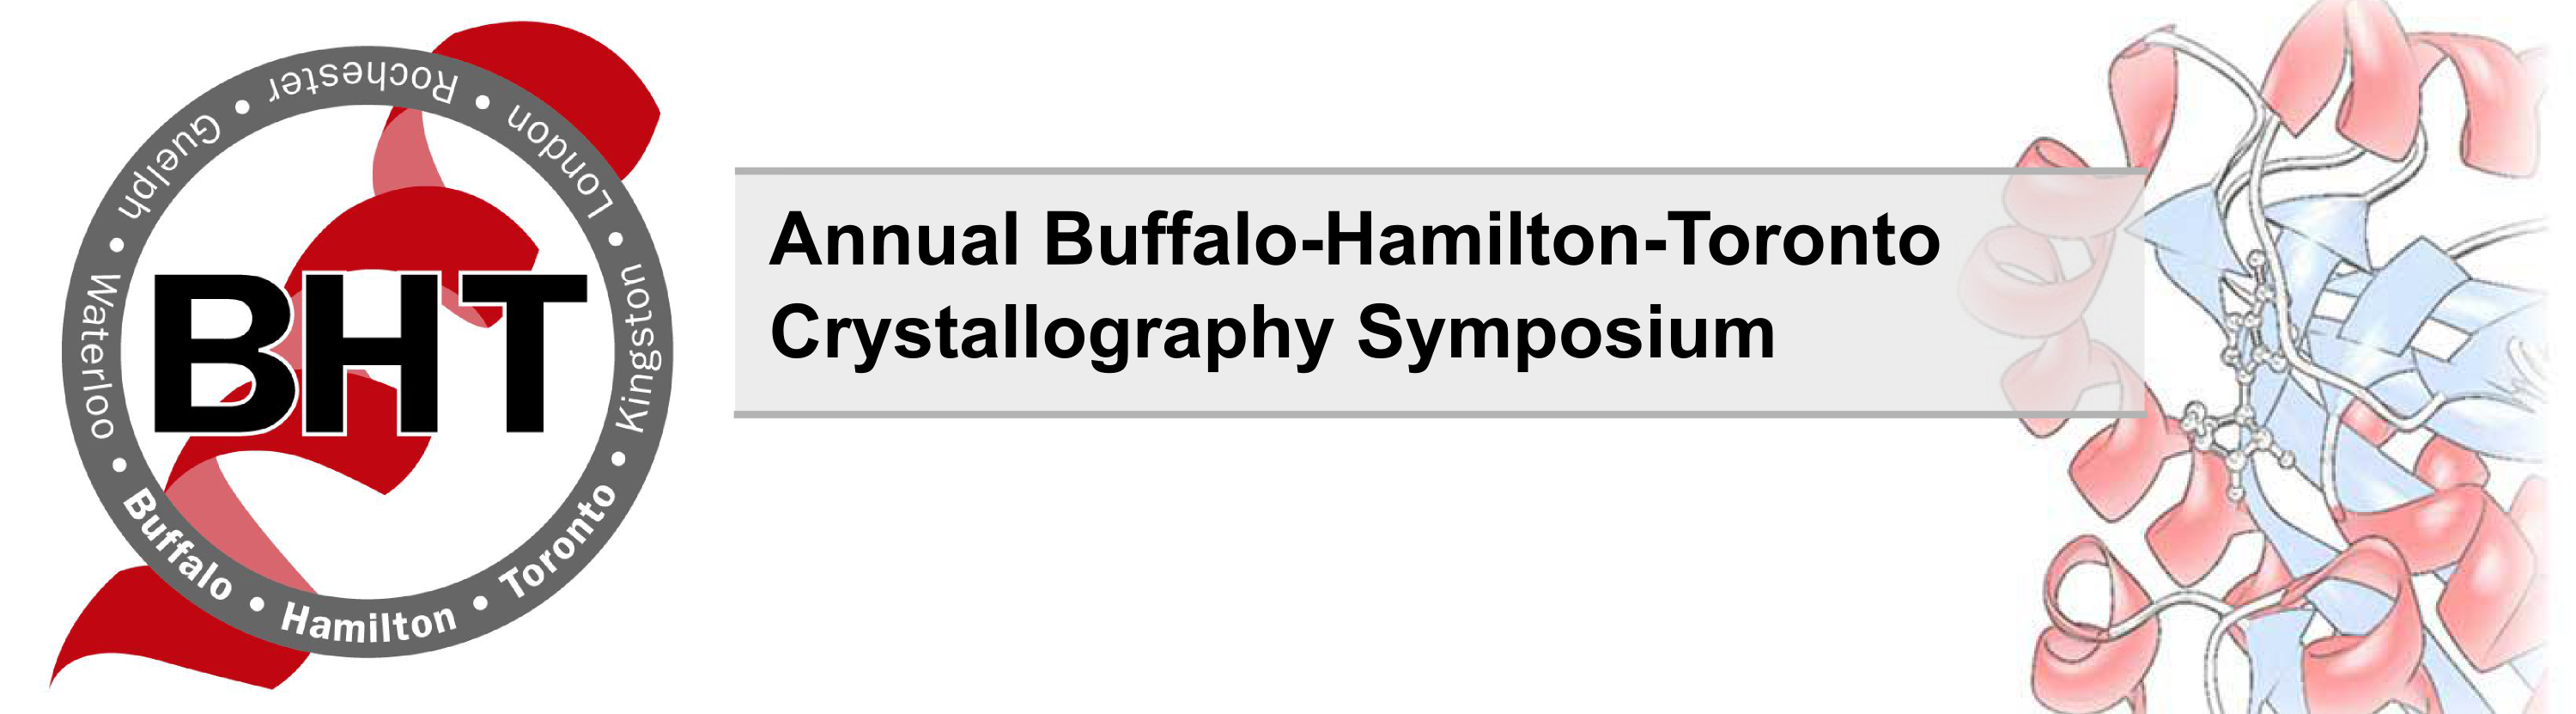 28th Annual Buffalo-Hamilton-Toronto (BHT) Crystallography-CryoEM Symposium